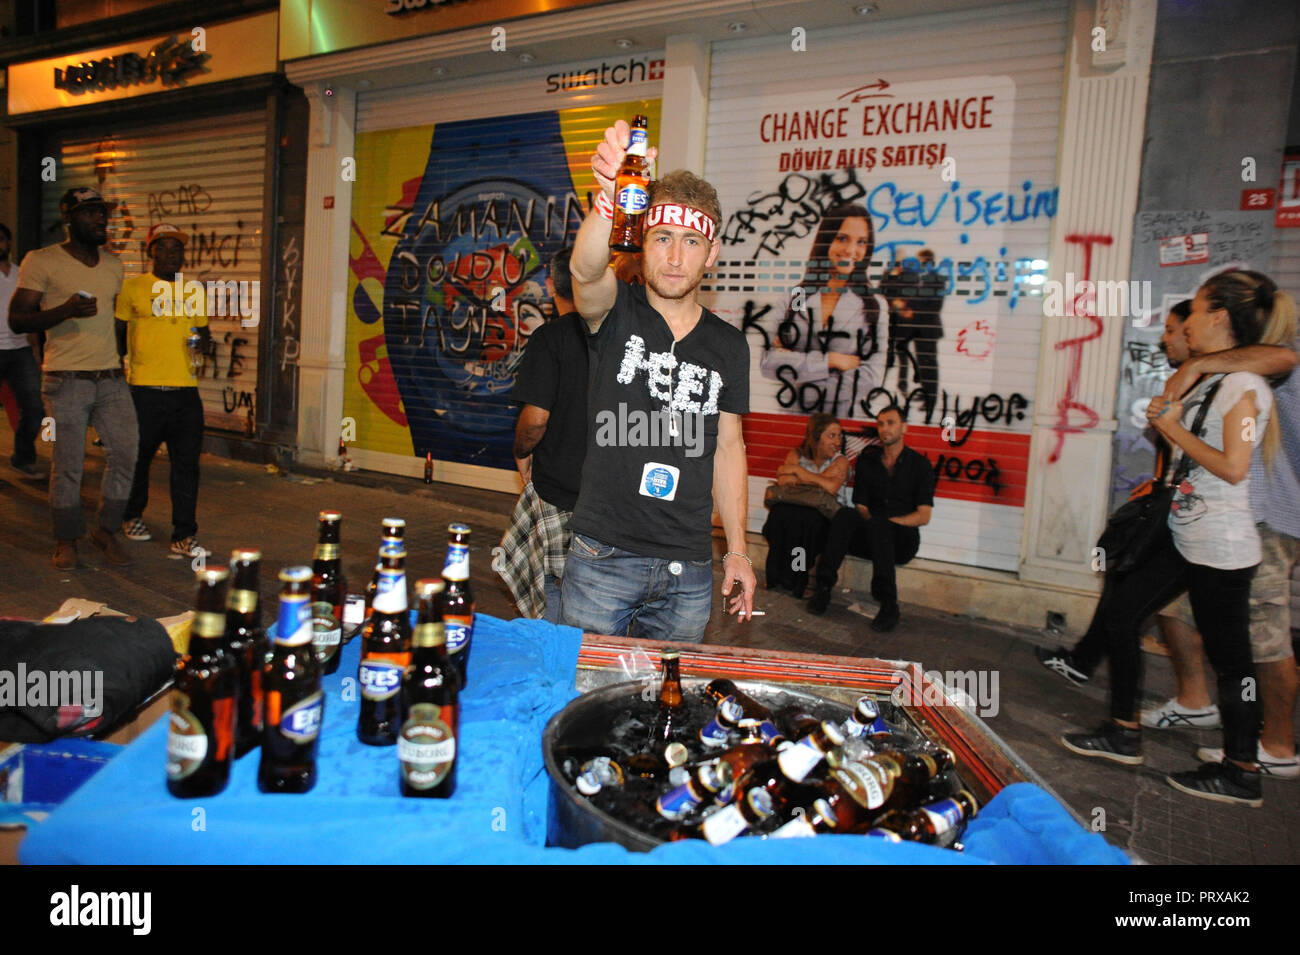 June 7, 2013 - Istanbul, Turkey: A street vendor sell alcohol very late at night near Taksim Square. Several Turkish demonstrators drink beers and celebrate loudly in public space as a way to protest against a new law prohibiting the take-away sale of alcoholic beverages between 10 pm and 6 am. Scene de celebrations dans la rue principale de Taksim, Istiklal, durant l'occupation du parc Gezi *** FRANCE OUT / NO SALES TO FRENCH MEDIA *** - Stock Image